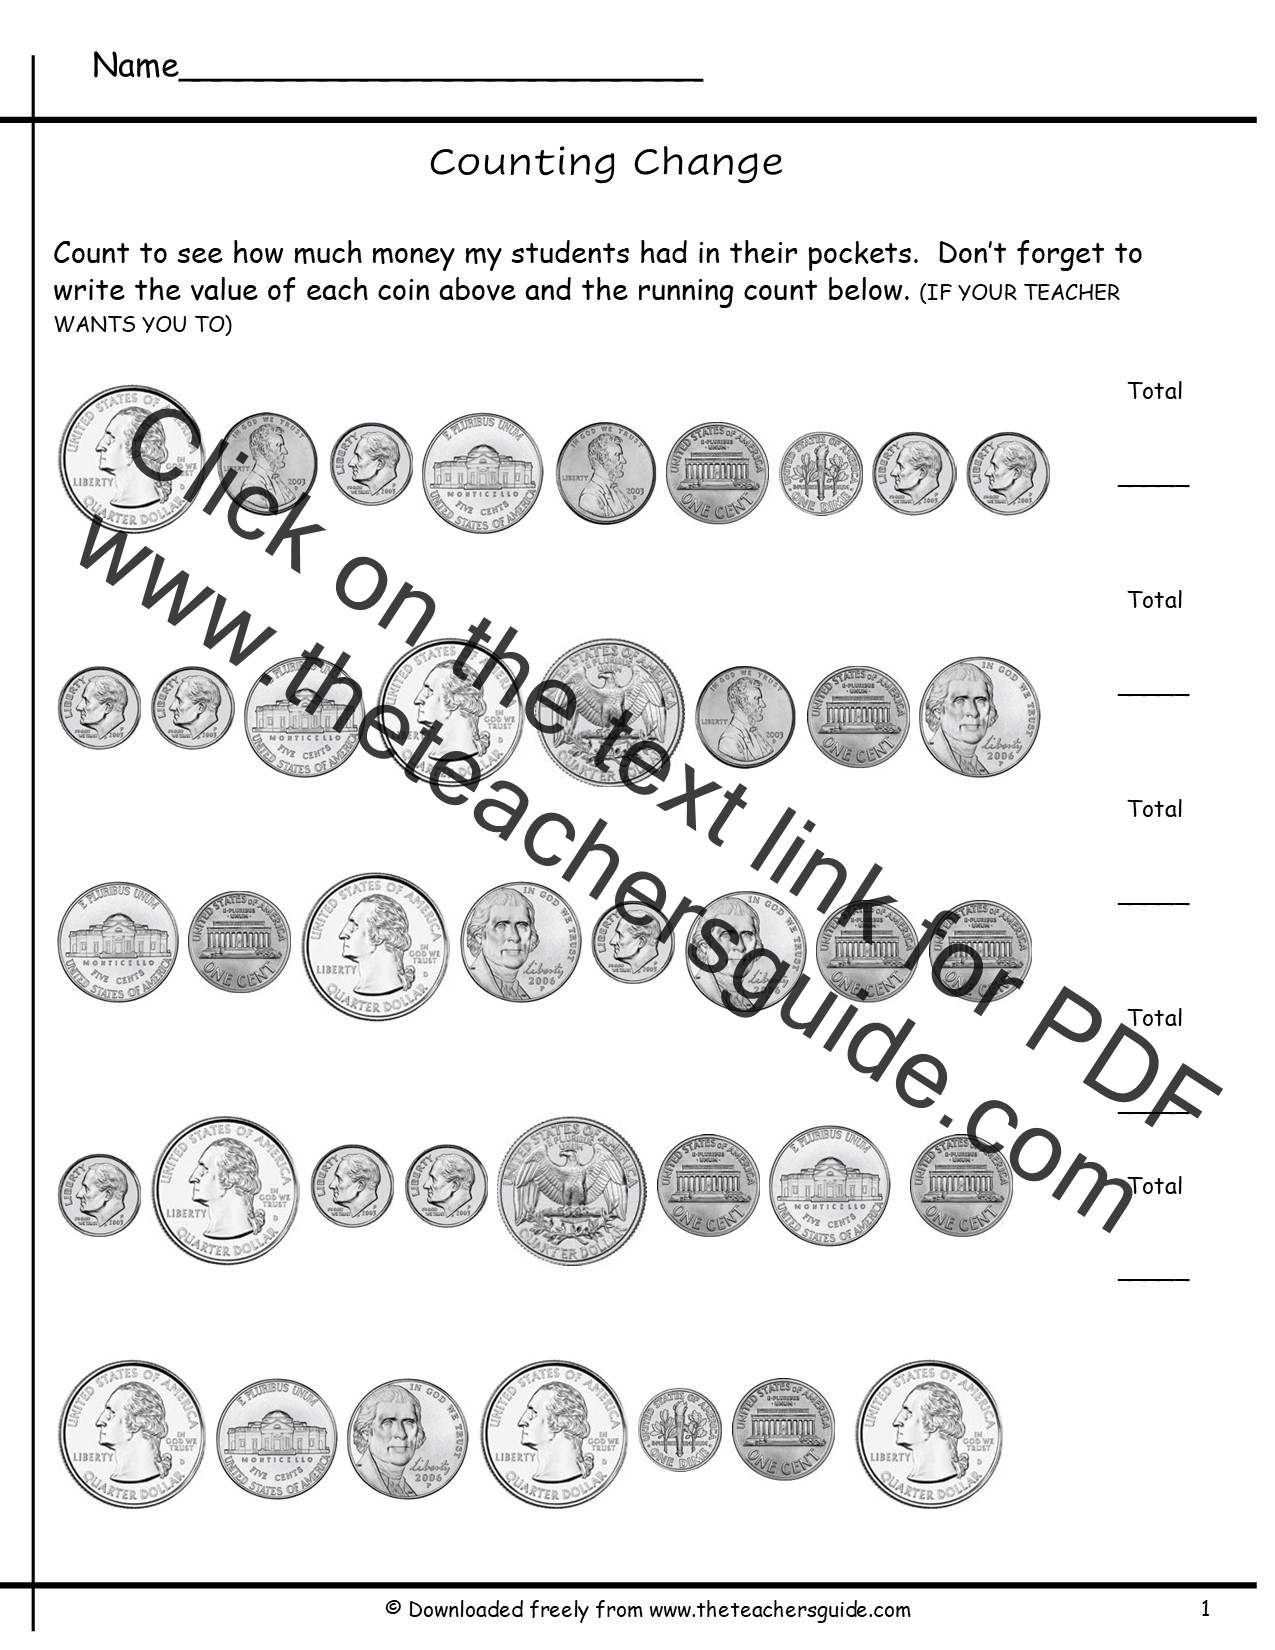 Counting Coins Worksheets from The Teacher's Guide